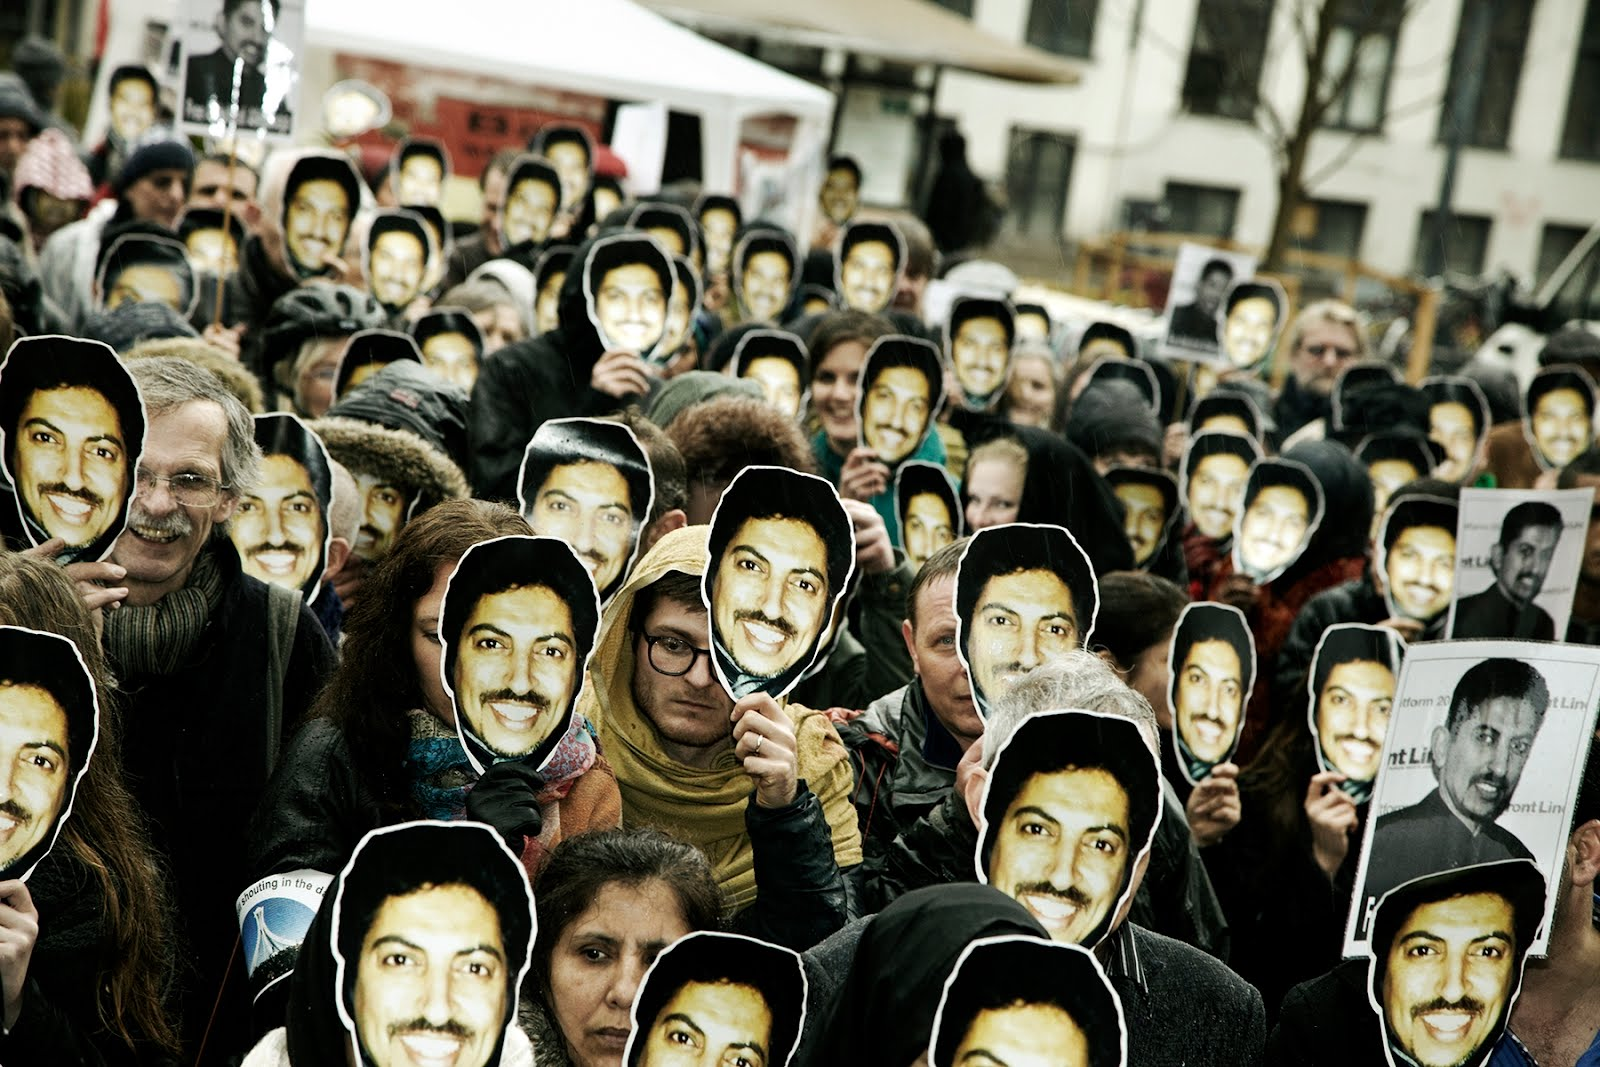 Bahrain: Prominent Human Rights Defender Abdulhadi Al-Khawaja to Start a New Hunger Strike